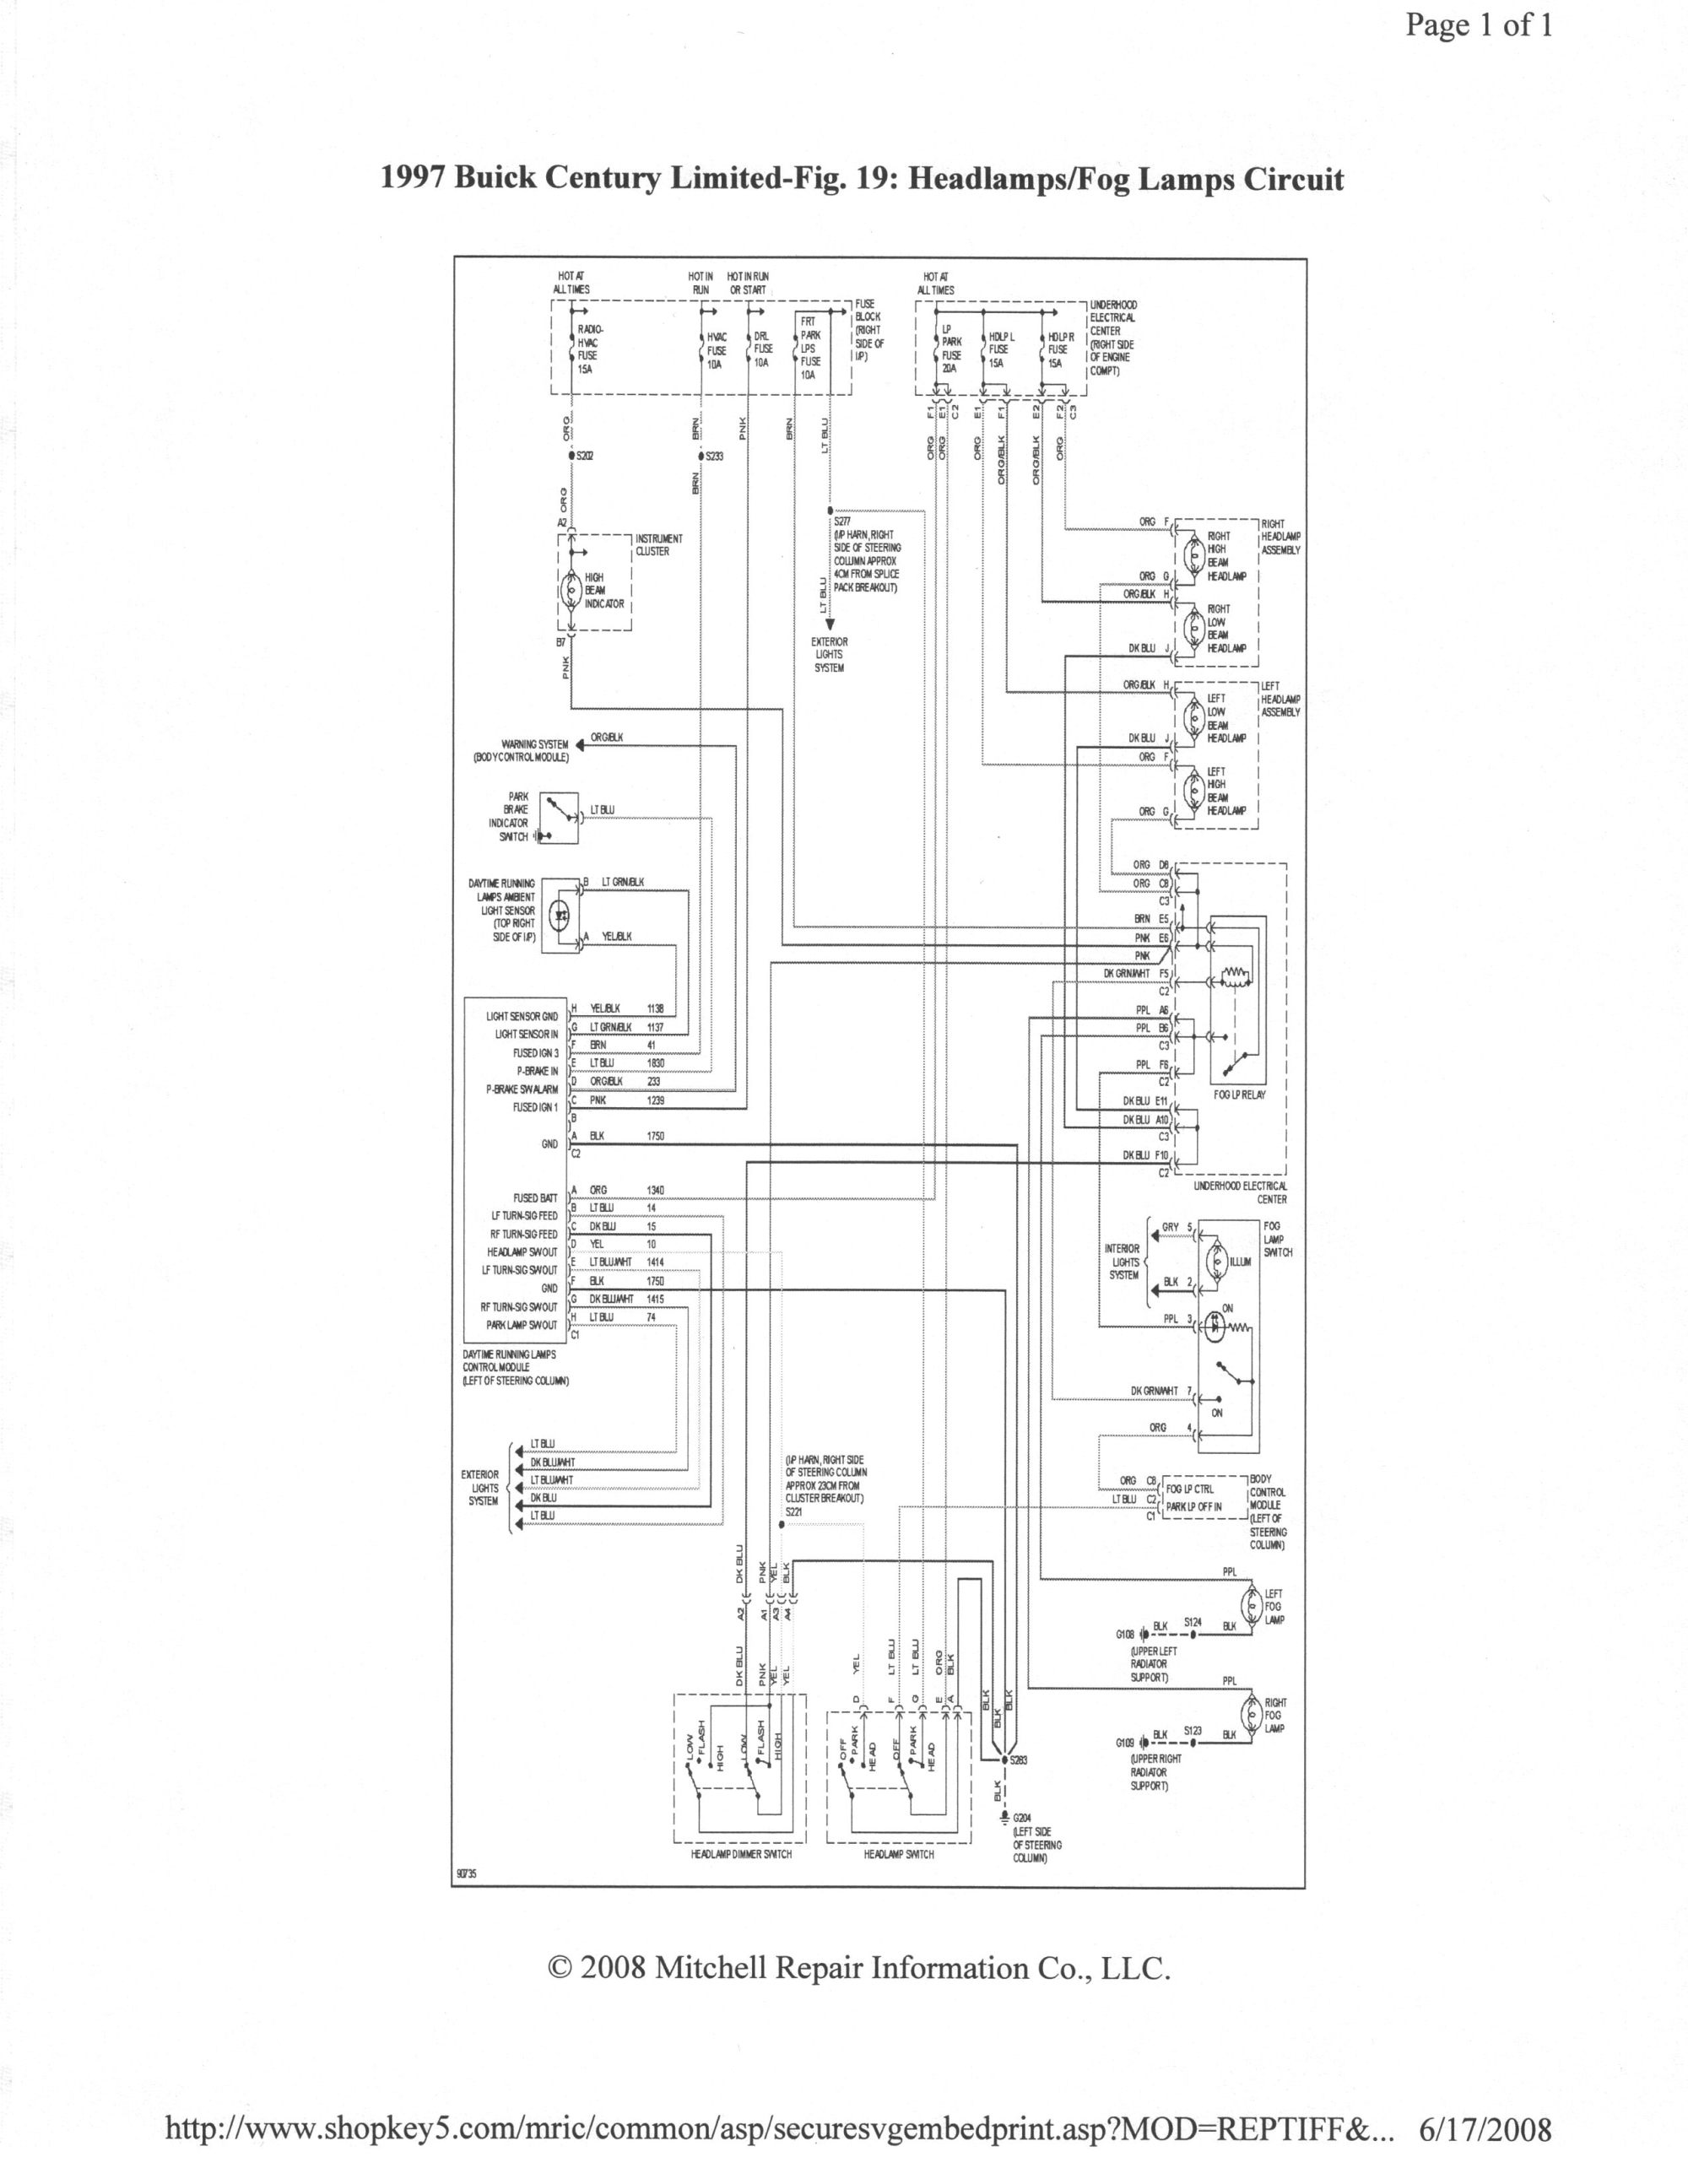 hight resolution of wrg 9303 2002 buick regal stereo wiring diagram2002 buick regal stereo wiring diagram trusted wiring